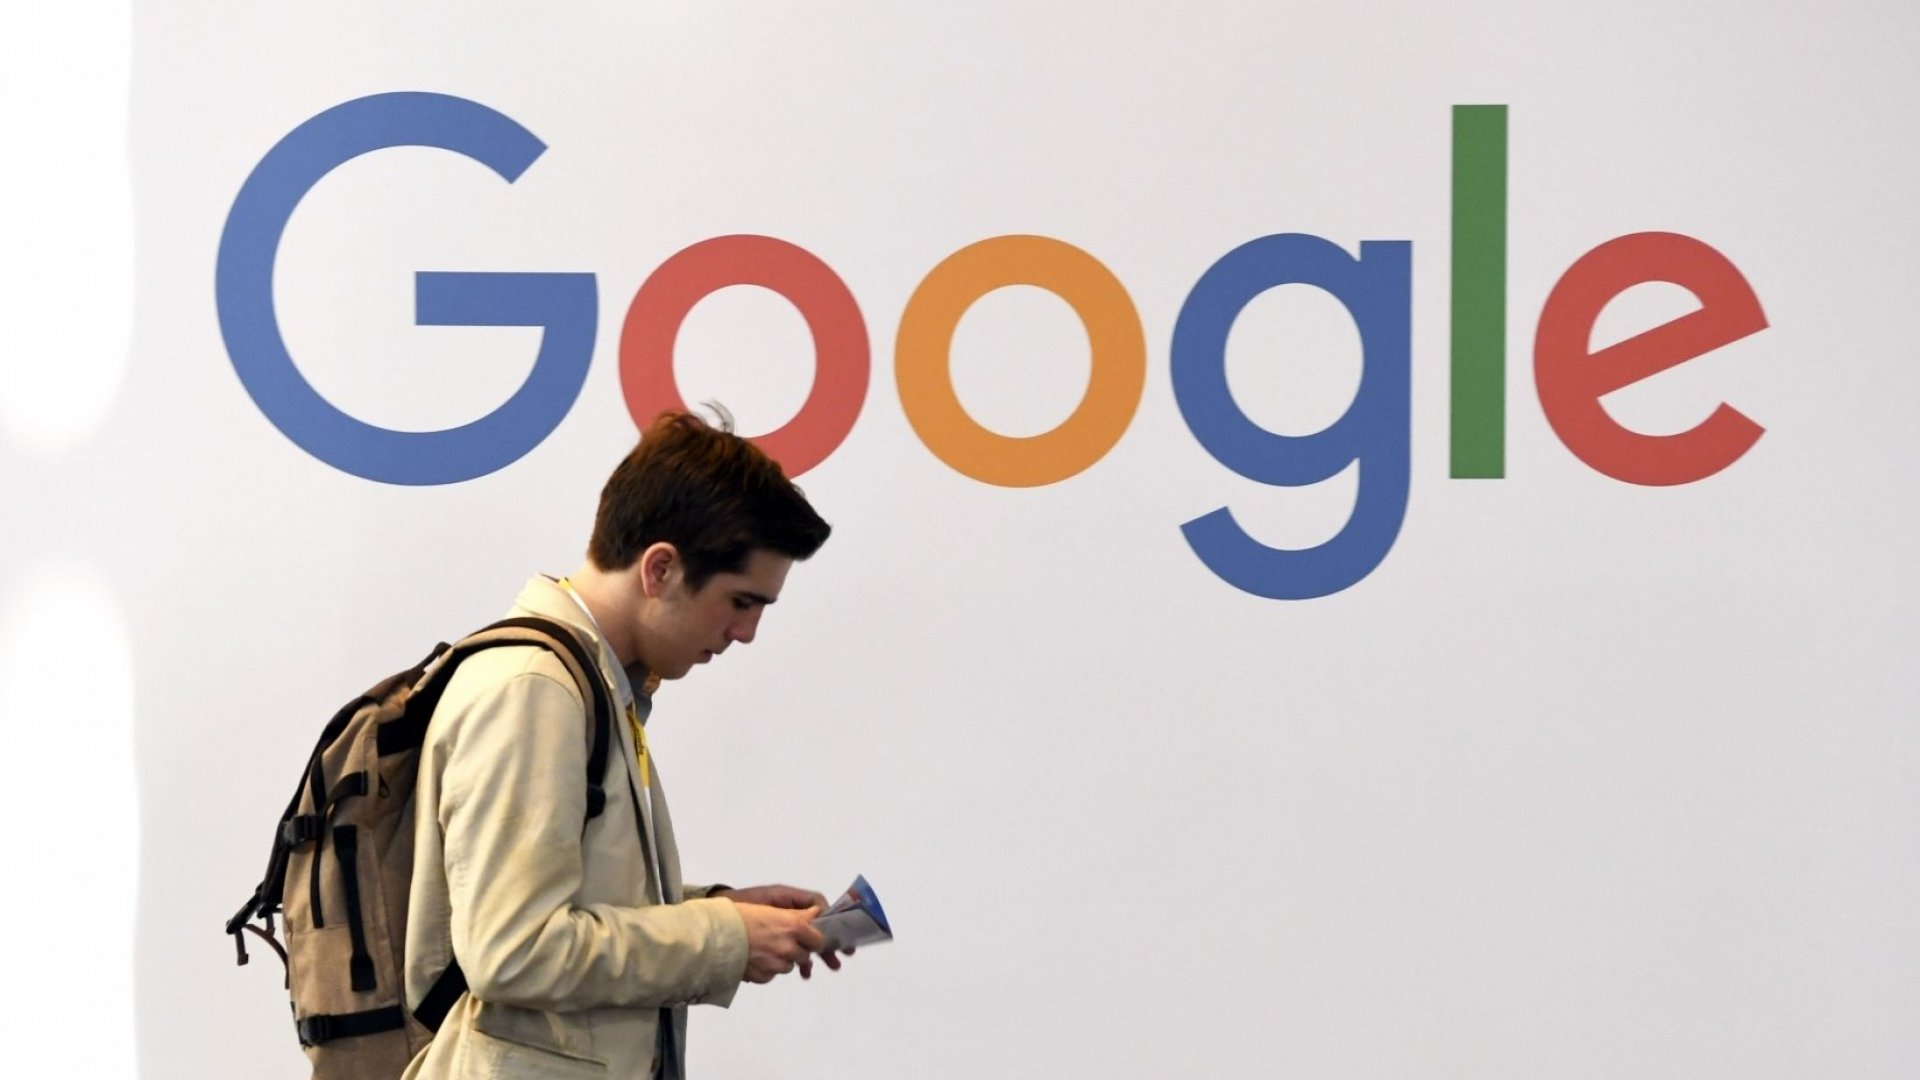 Google S Plan To Disrupt The College Degree Is Absolute Genius Hccr Human Capital Consulting Recruiting